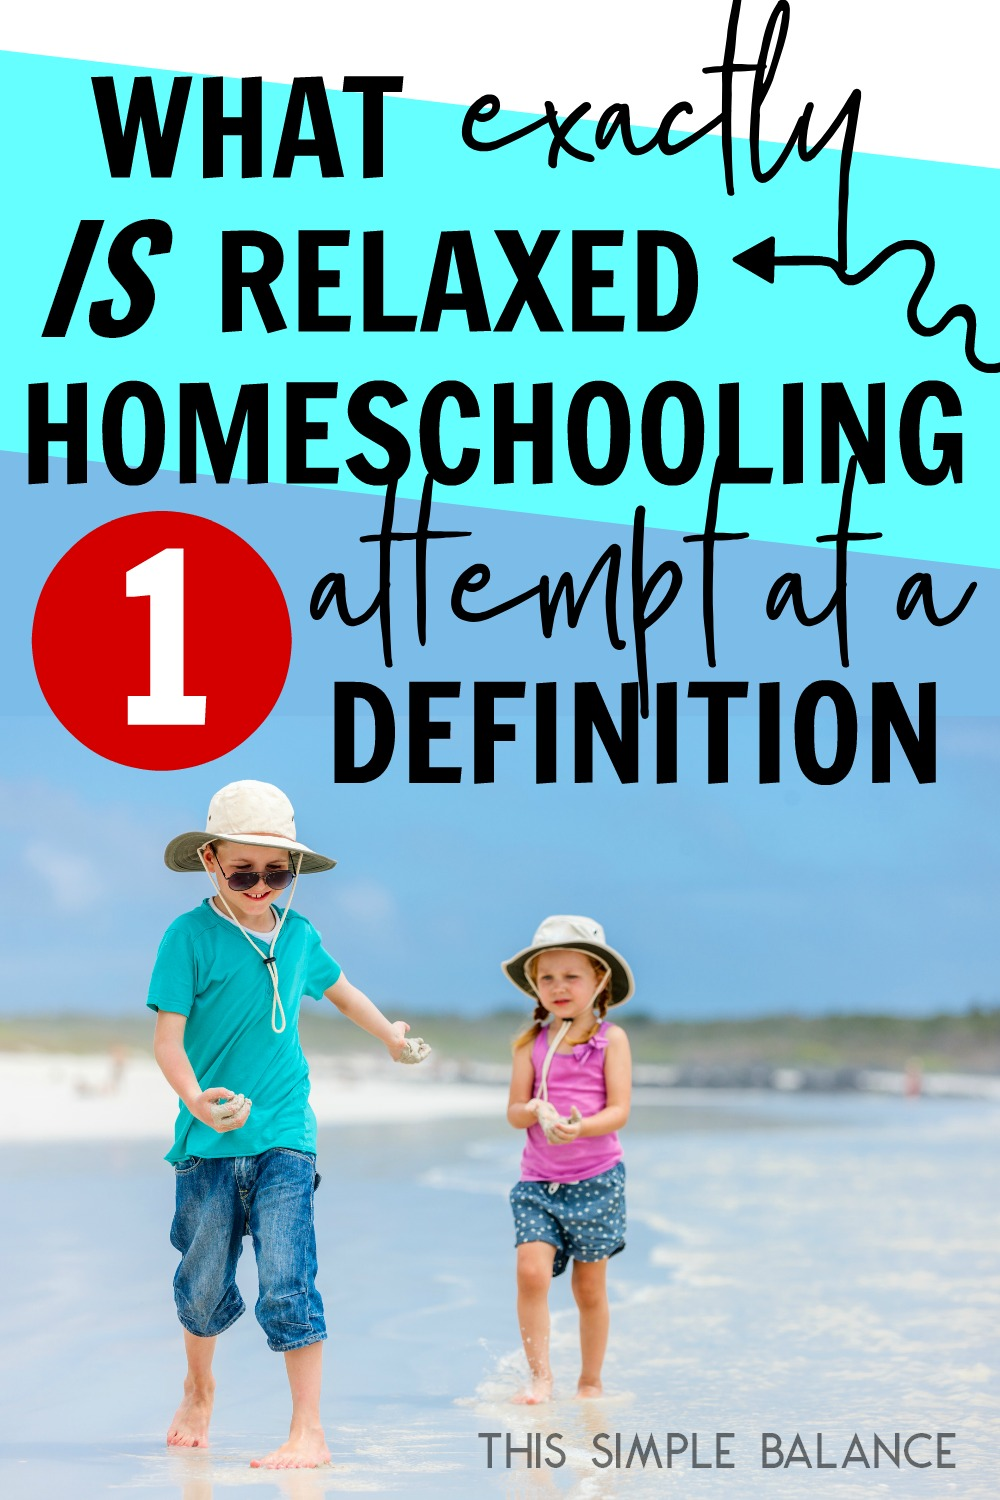 Relaxed homeschooling defined